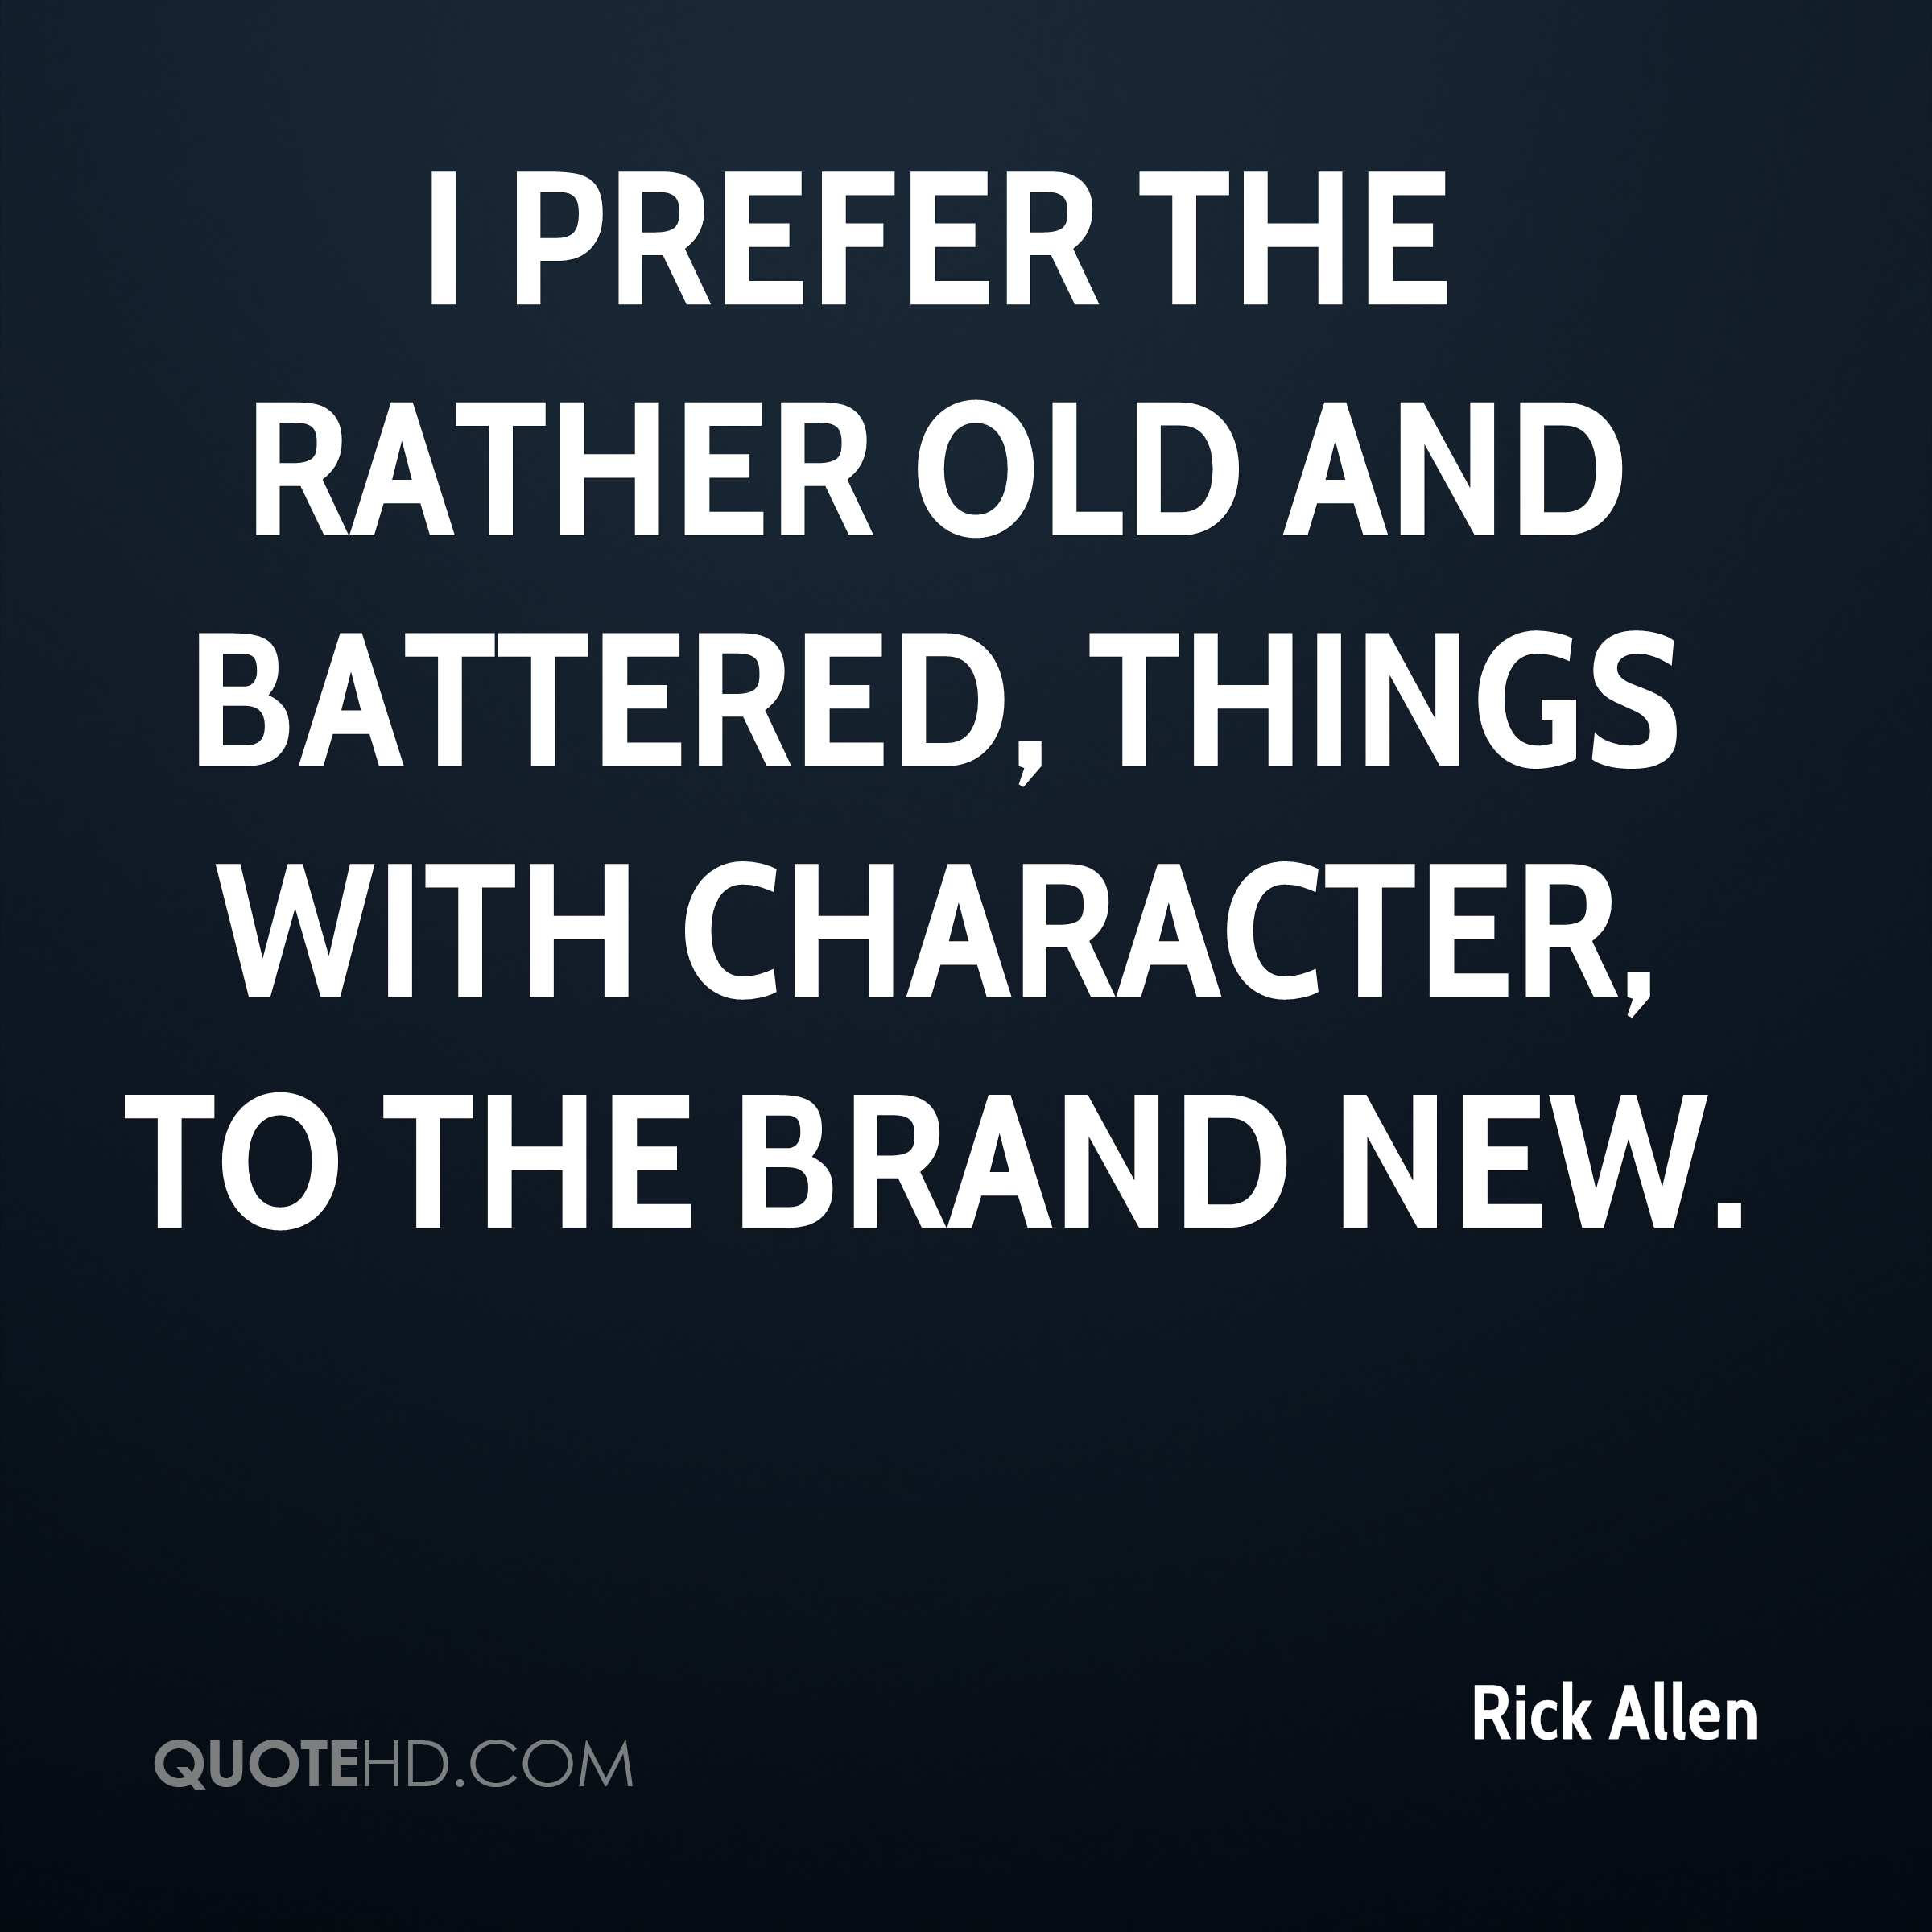 I prefer the rather old and battered, things with character, to the brand new.